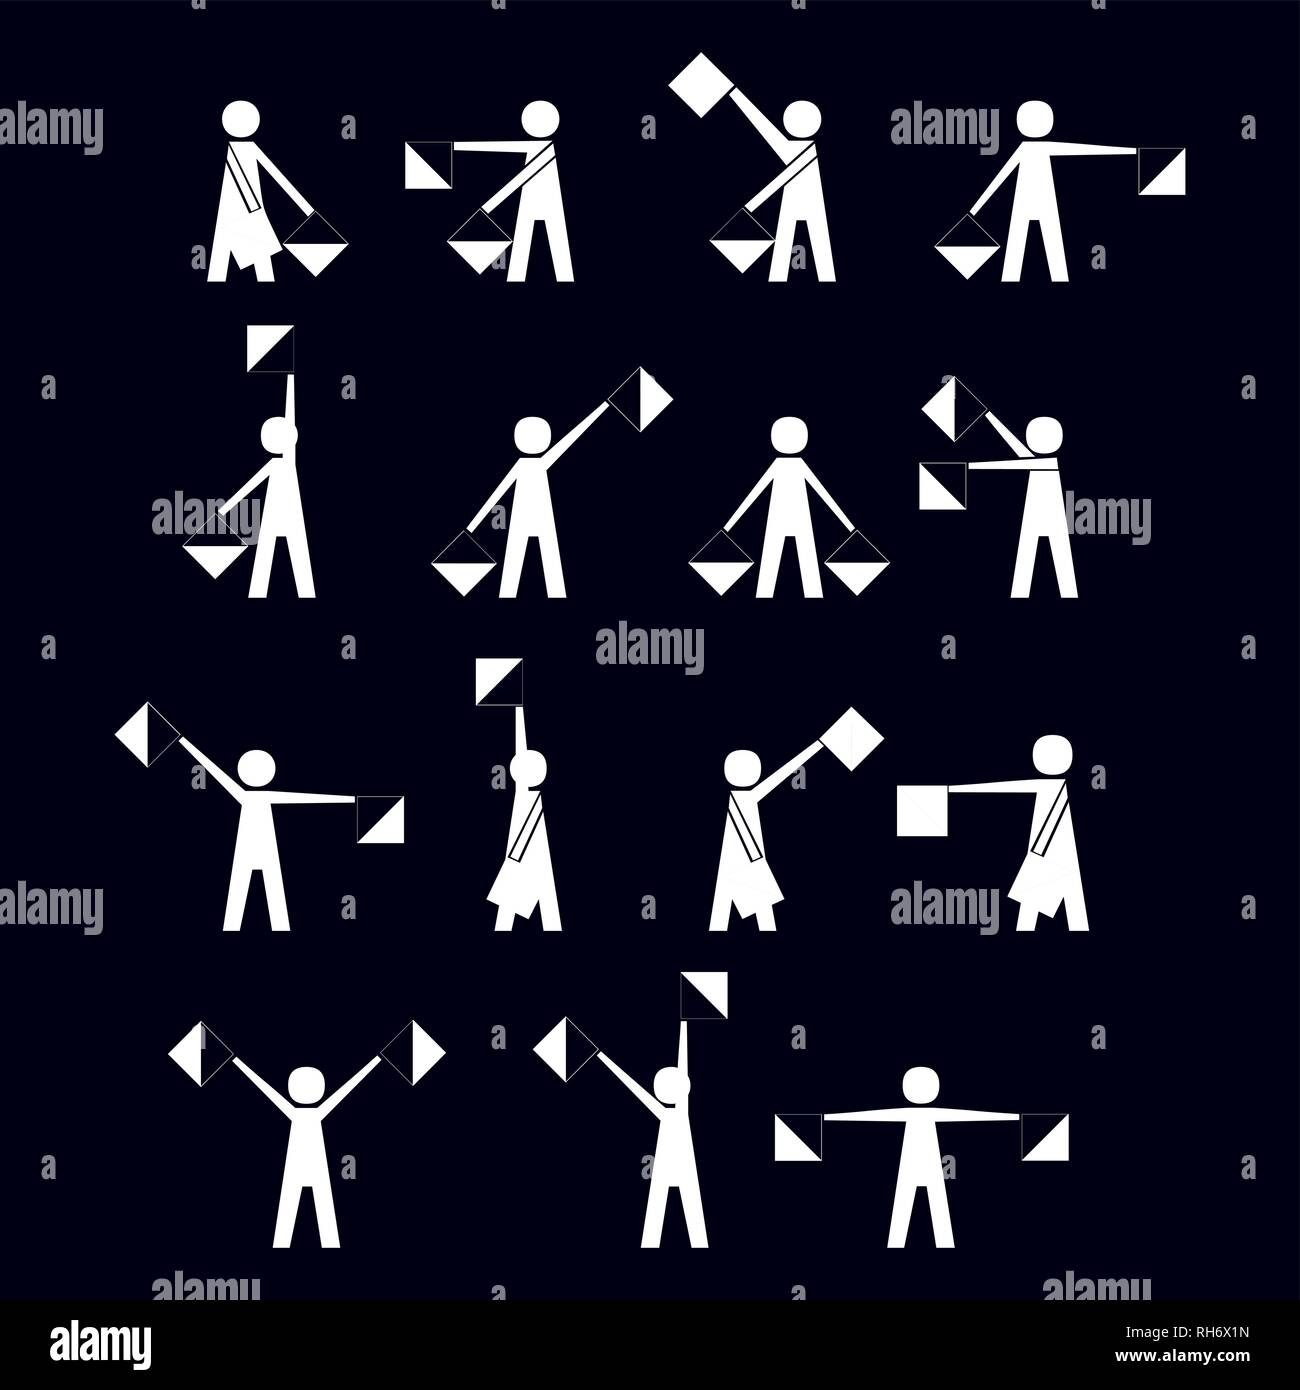 alphabet - flag semaphore system. vector alphabet icon Vector illustration isolated on white - Stock Vector